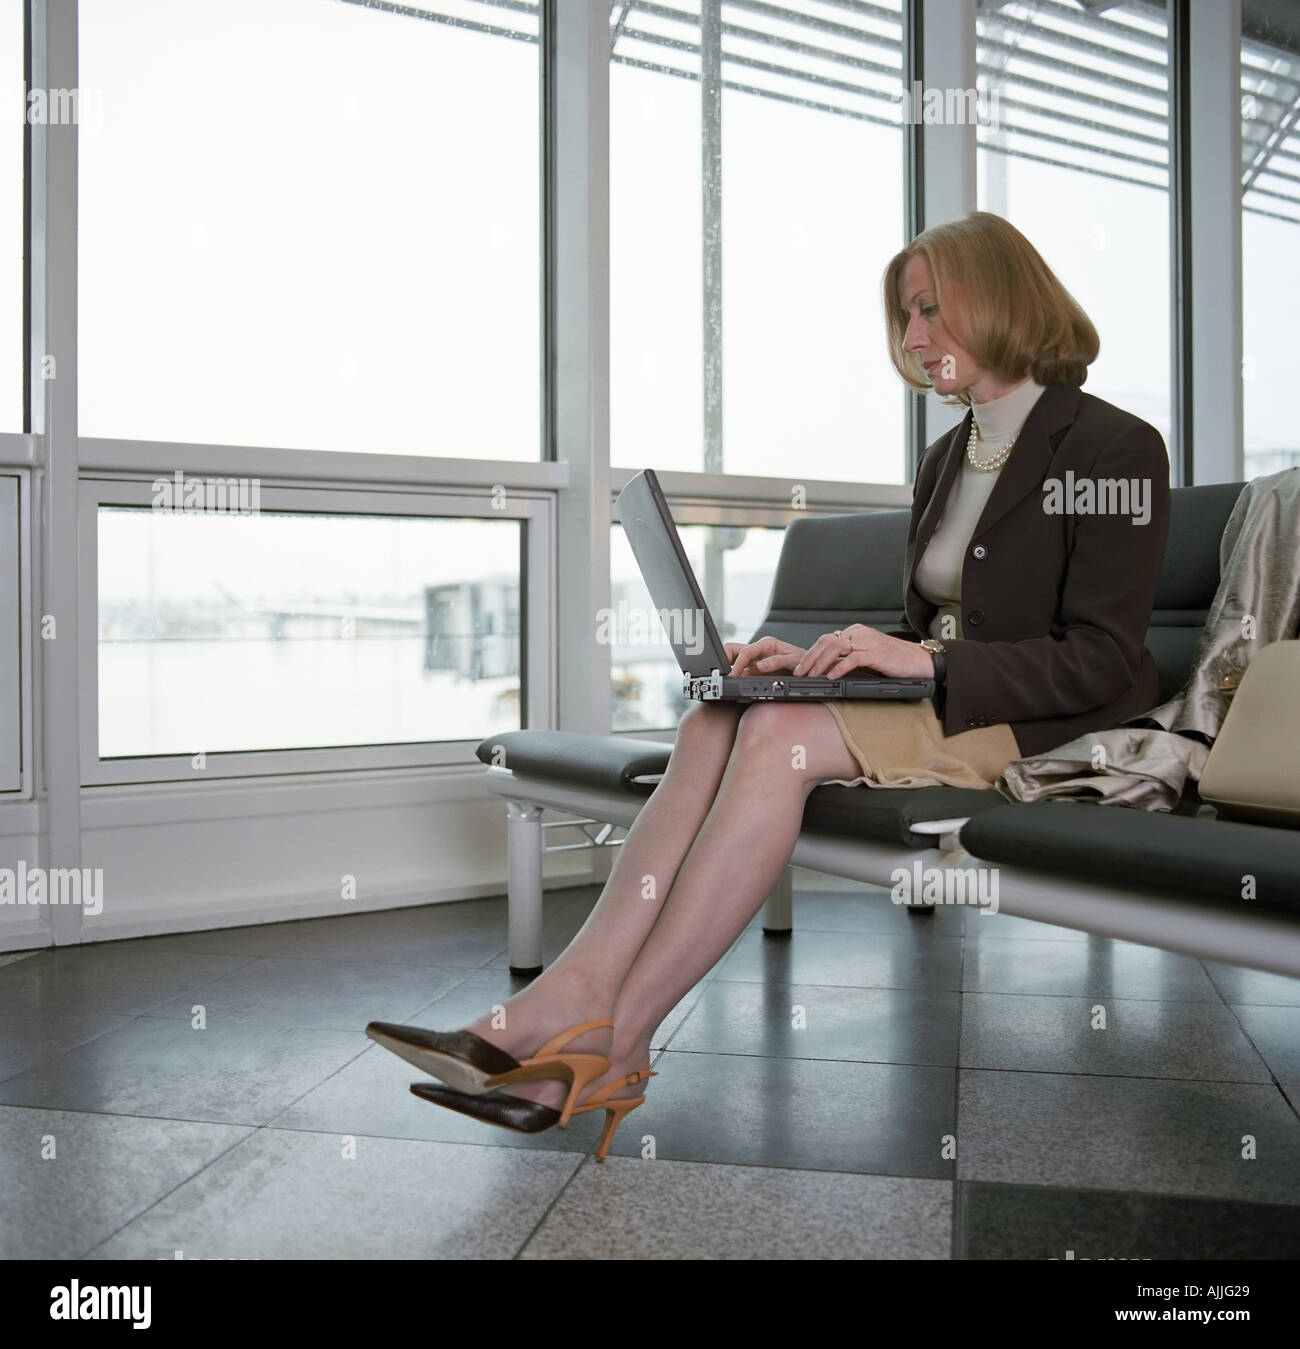 Businesswoman using laptop in departure lounge - Stock Image